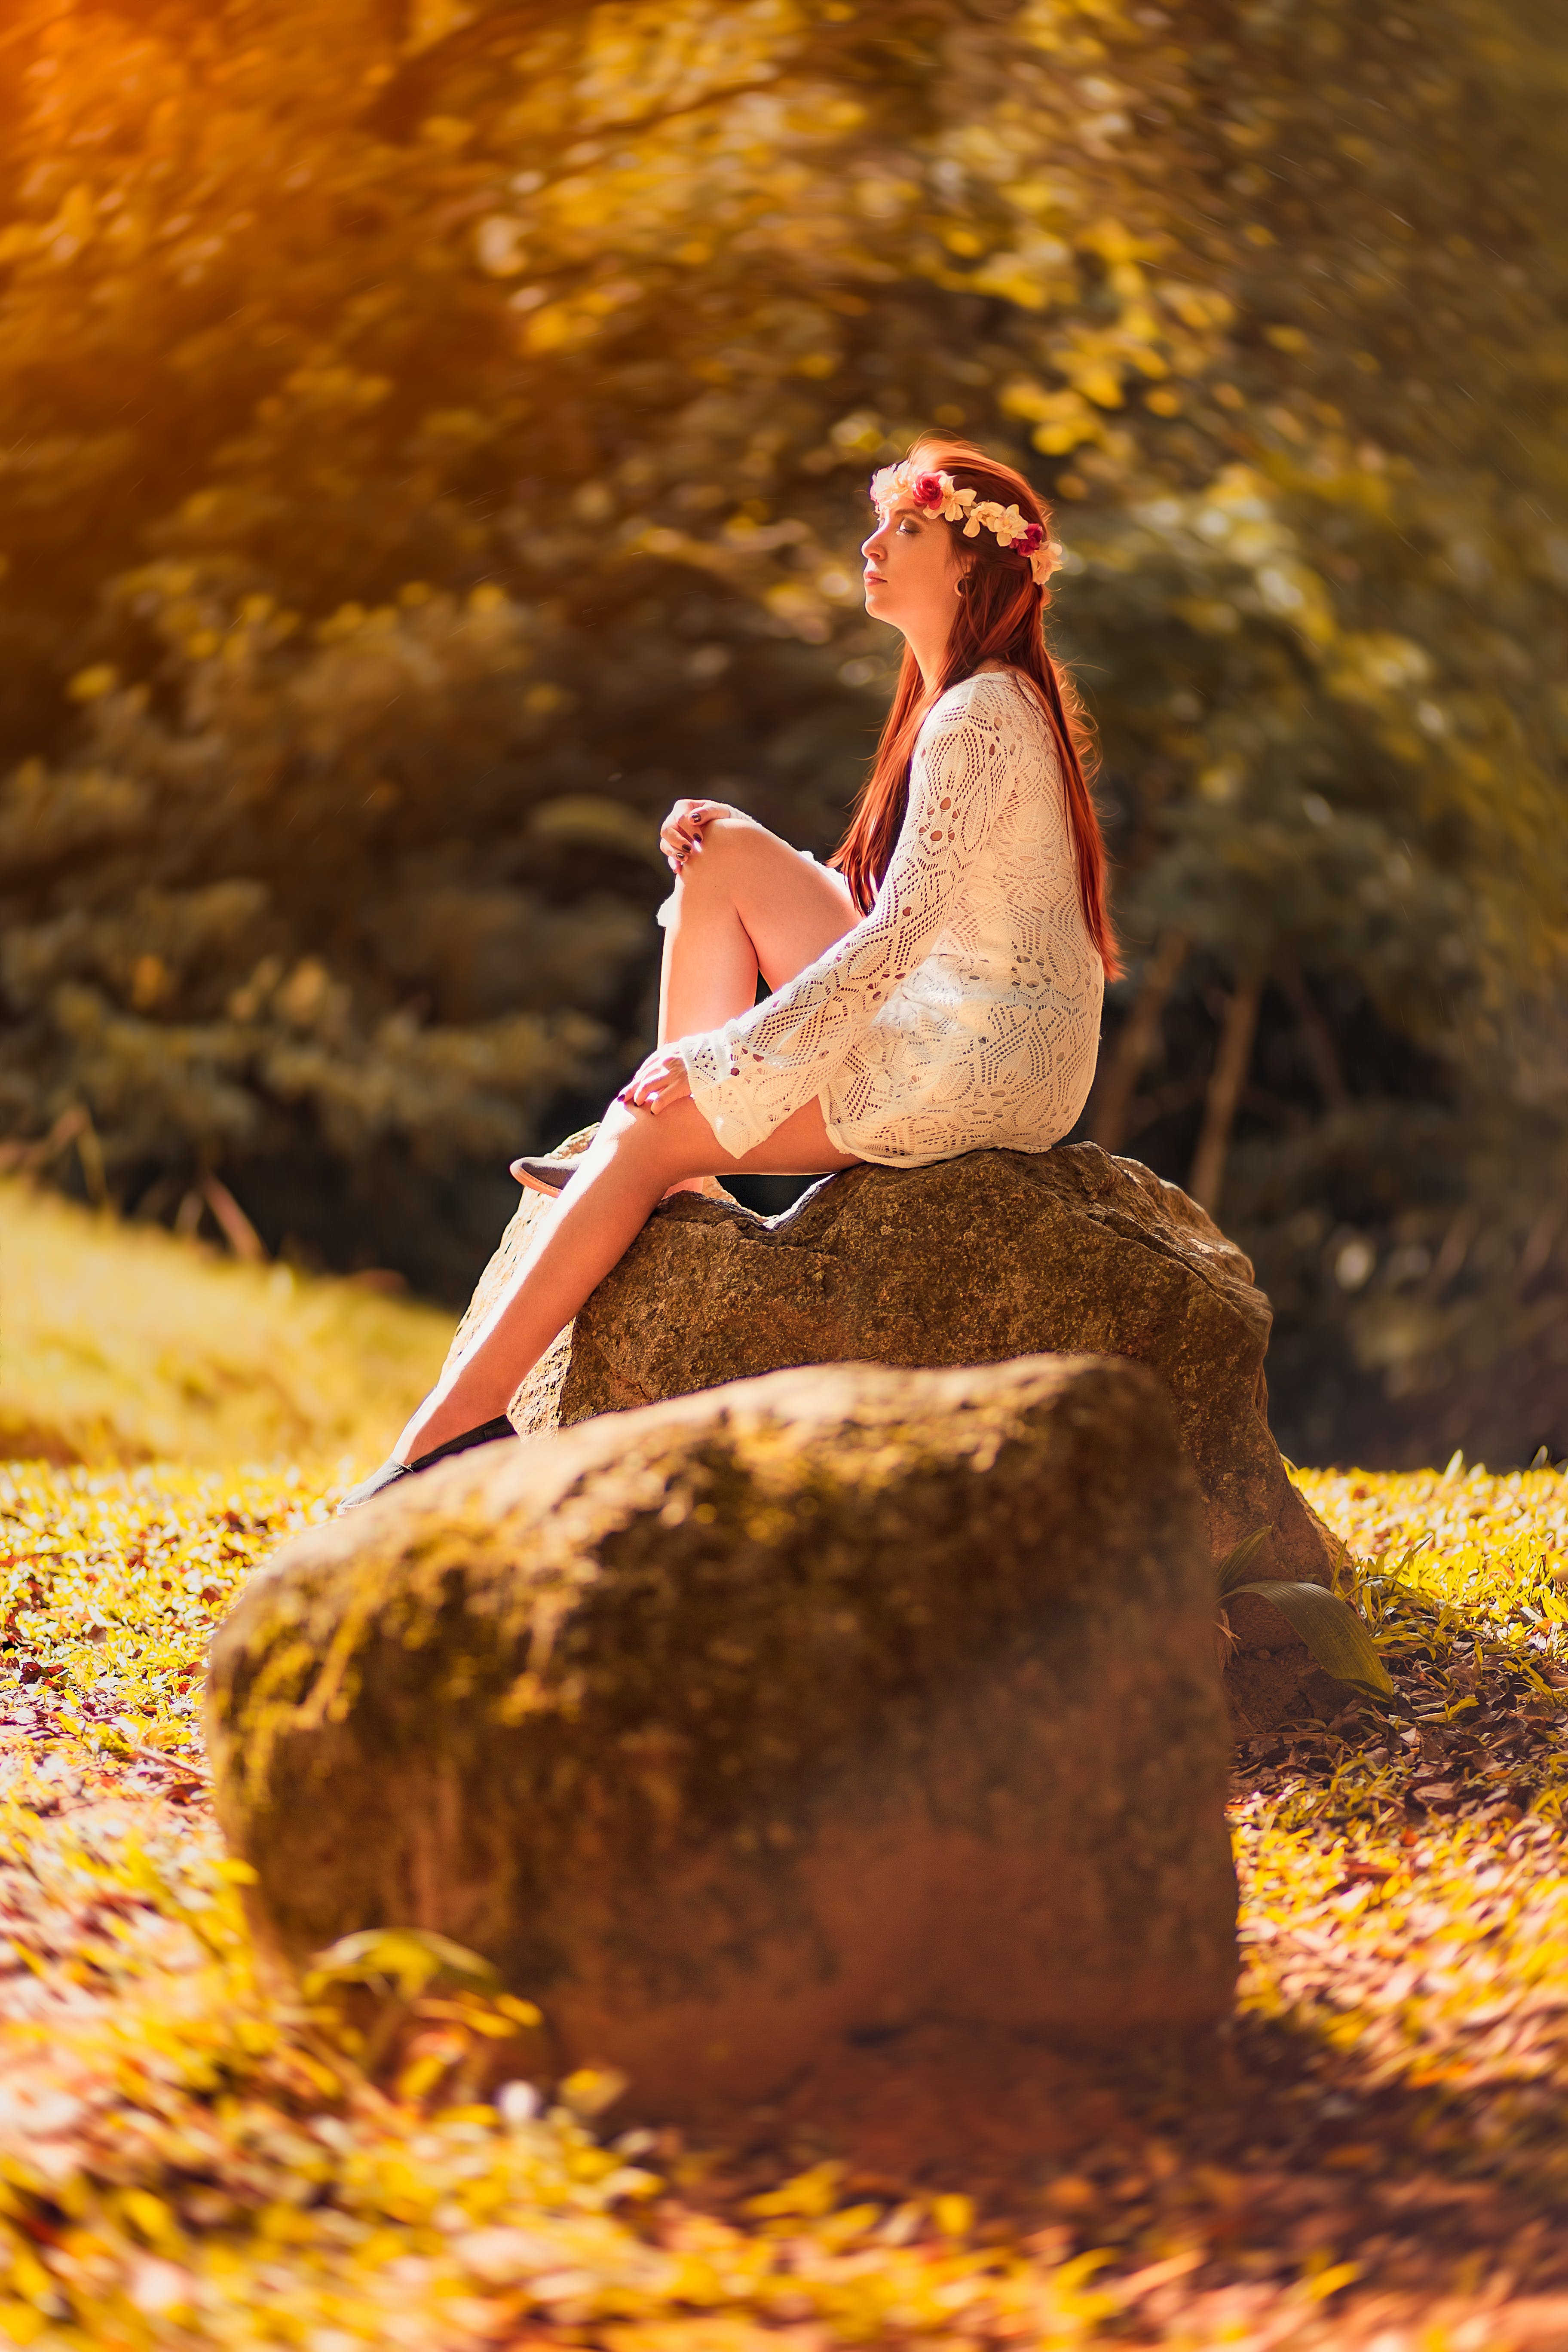 Woman Sitting on Brown Stone